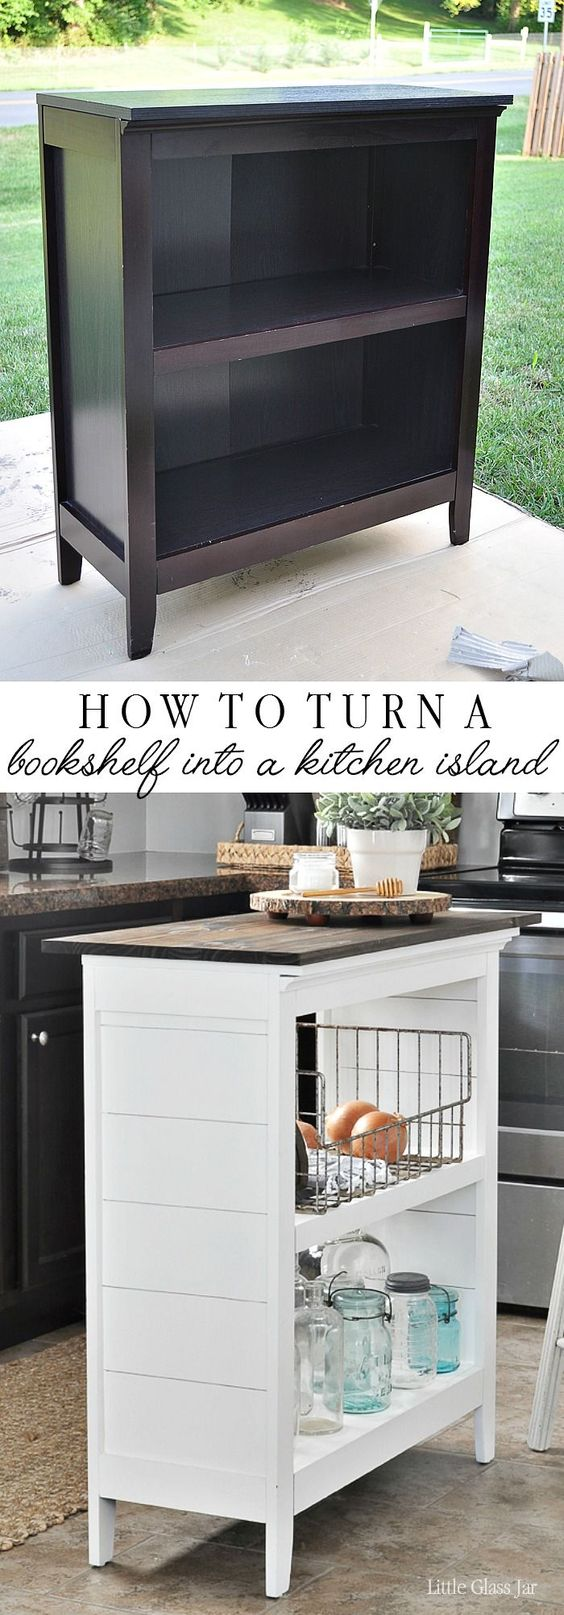 SUPER CLEVER! Turn an old bookcase into a kitchen island!